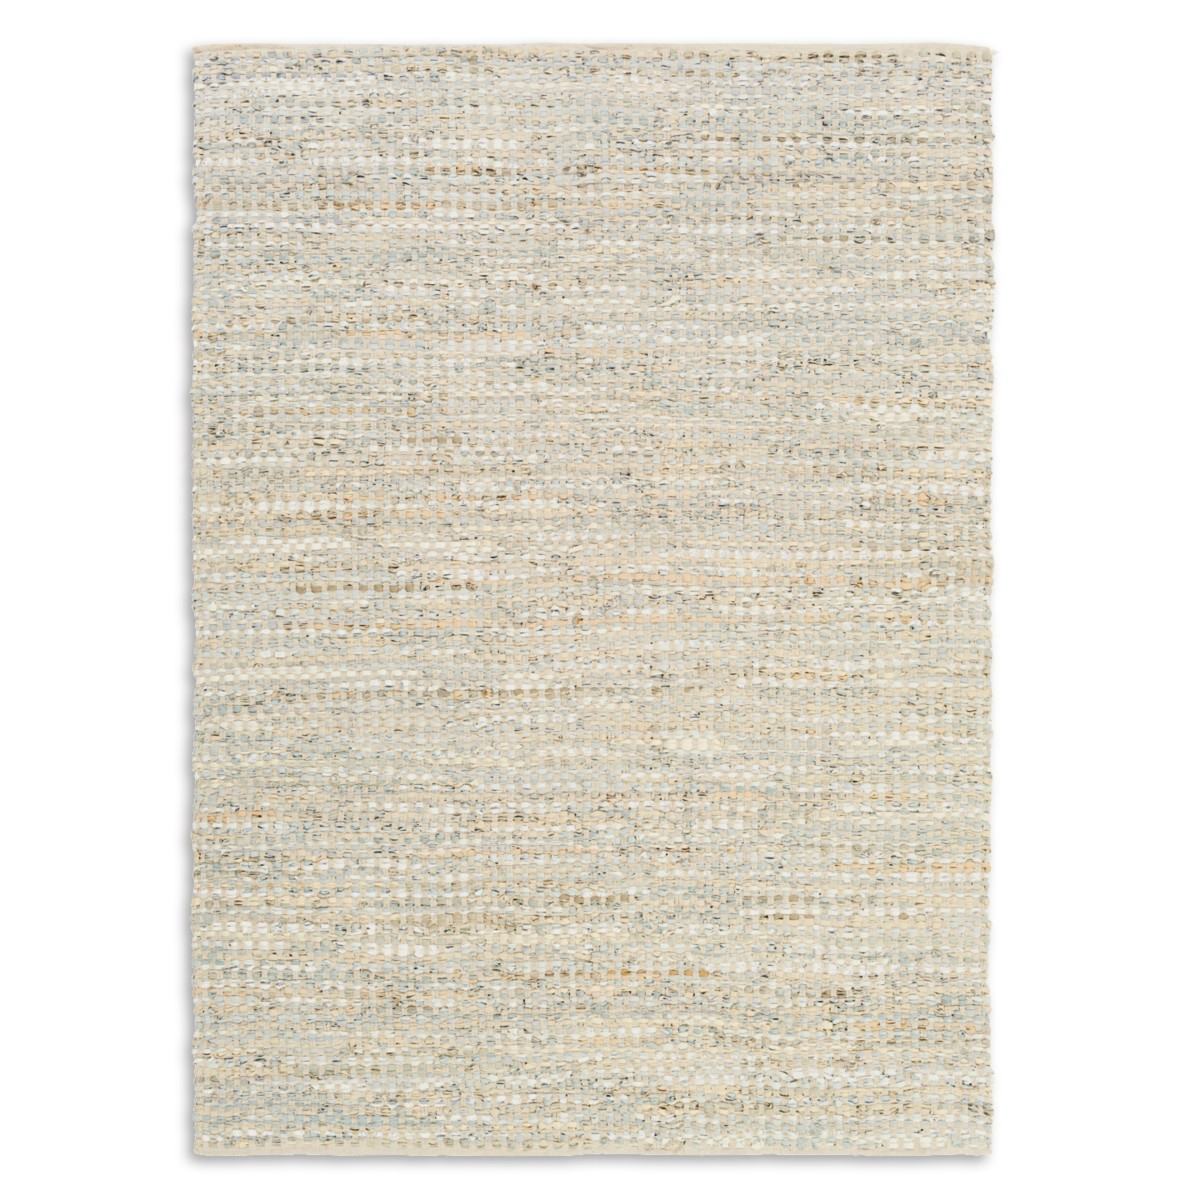 Leather Rag Rug - Yellow/Gray